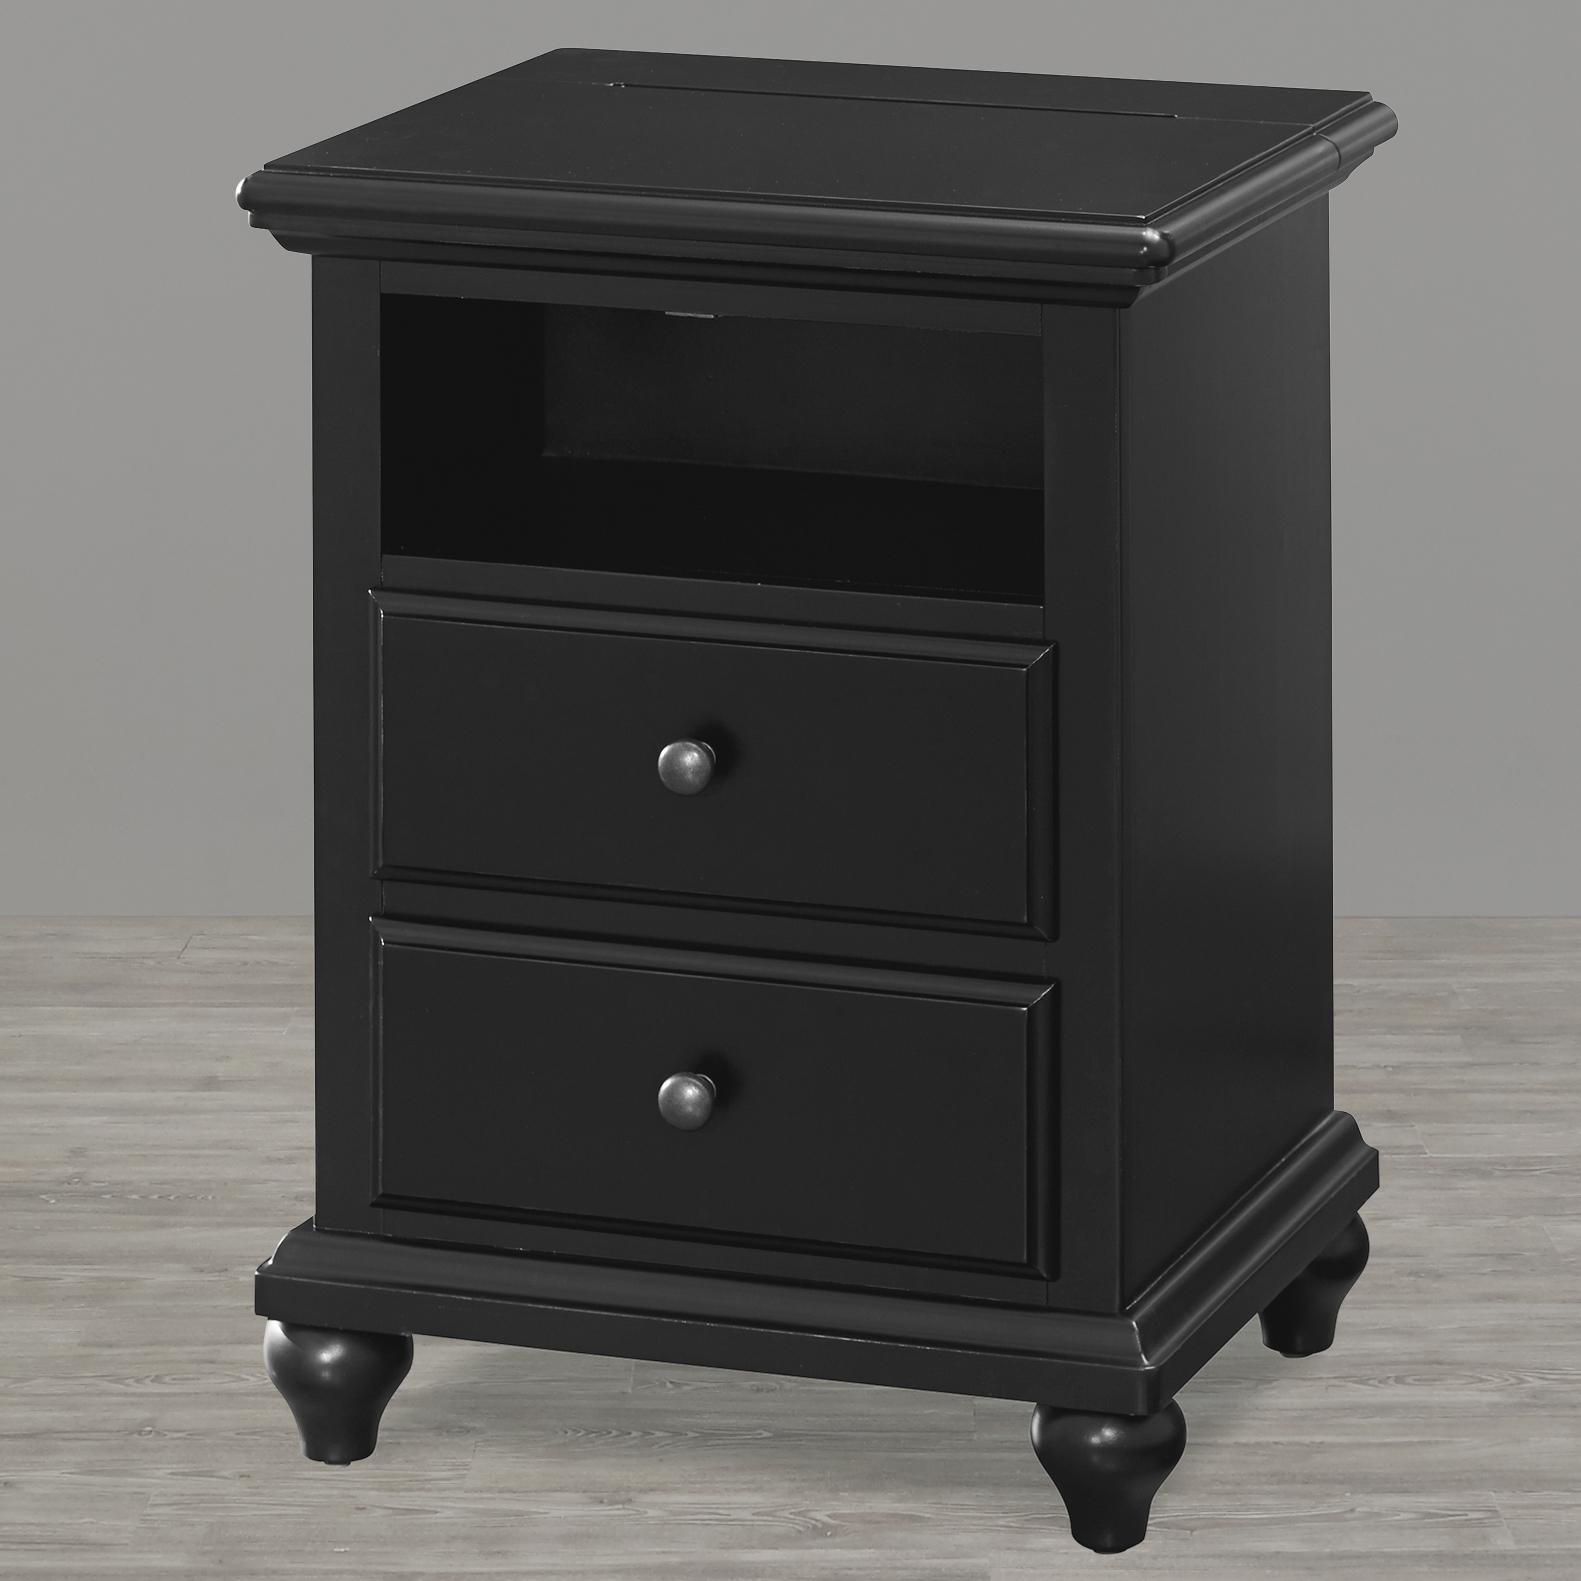 Smartstuff Black and White Night Stand - Item Number: 437B080